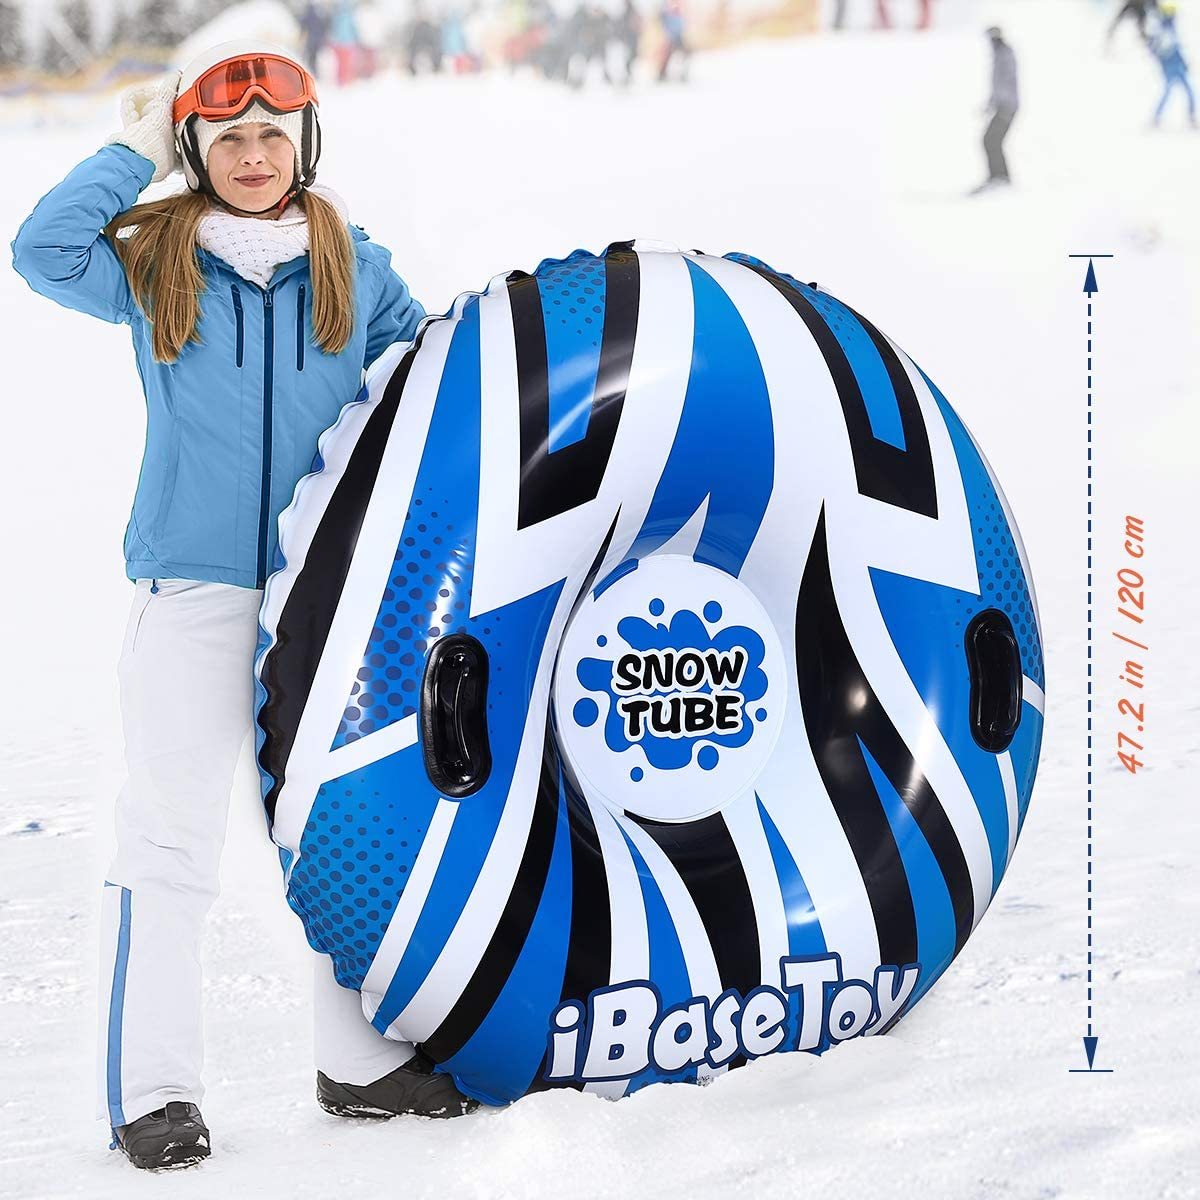 iBaseToy Super Big Snow Tube Heavy Duty Winter Snow Tube with 2 Higher Handles for Family 47 Inch Inflatable Snow Sled for Kids and Adults Snow Toys for Winter Sport Fun